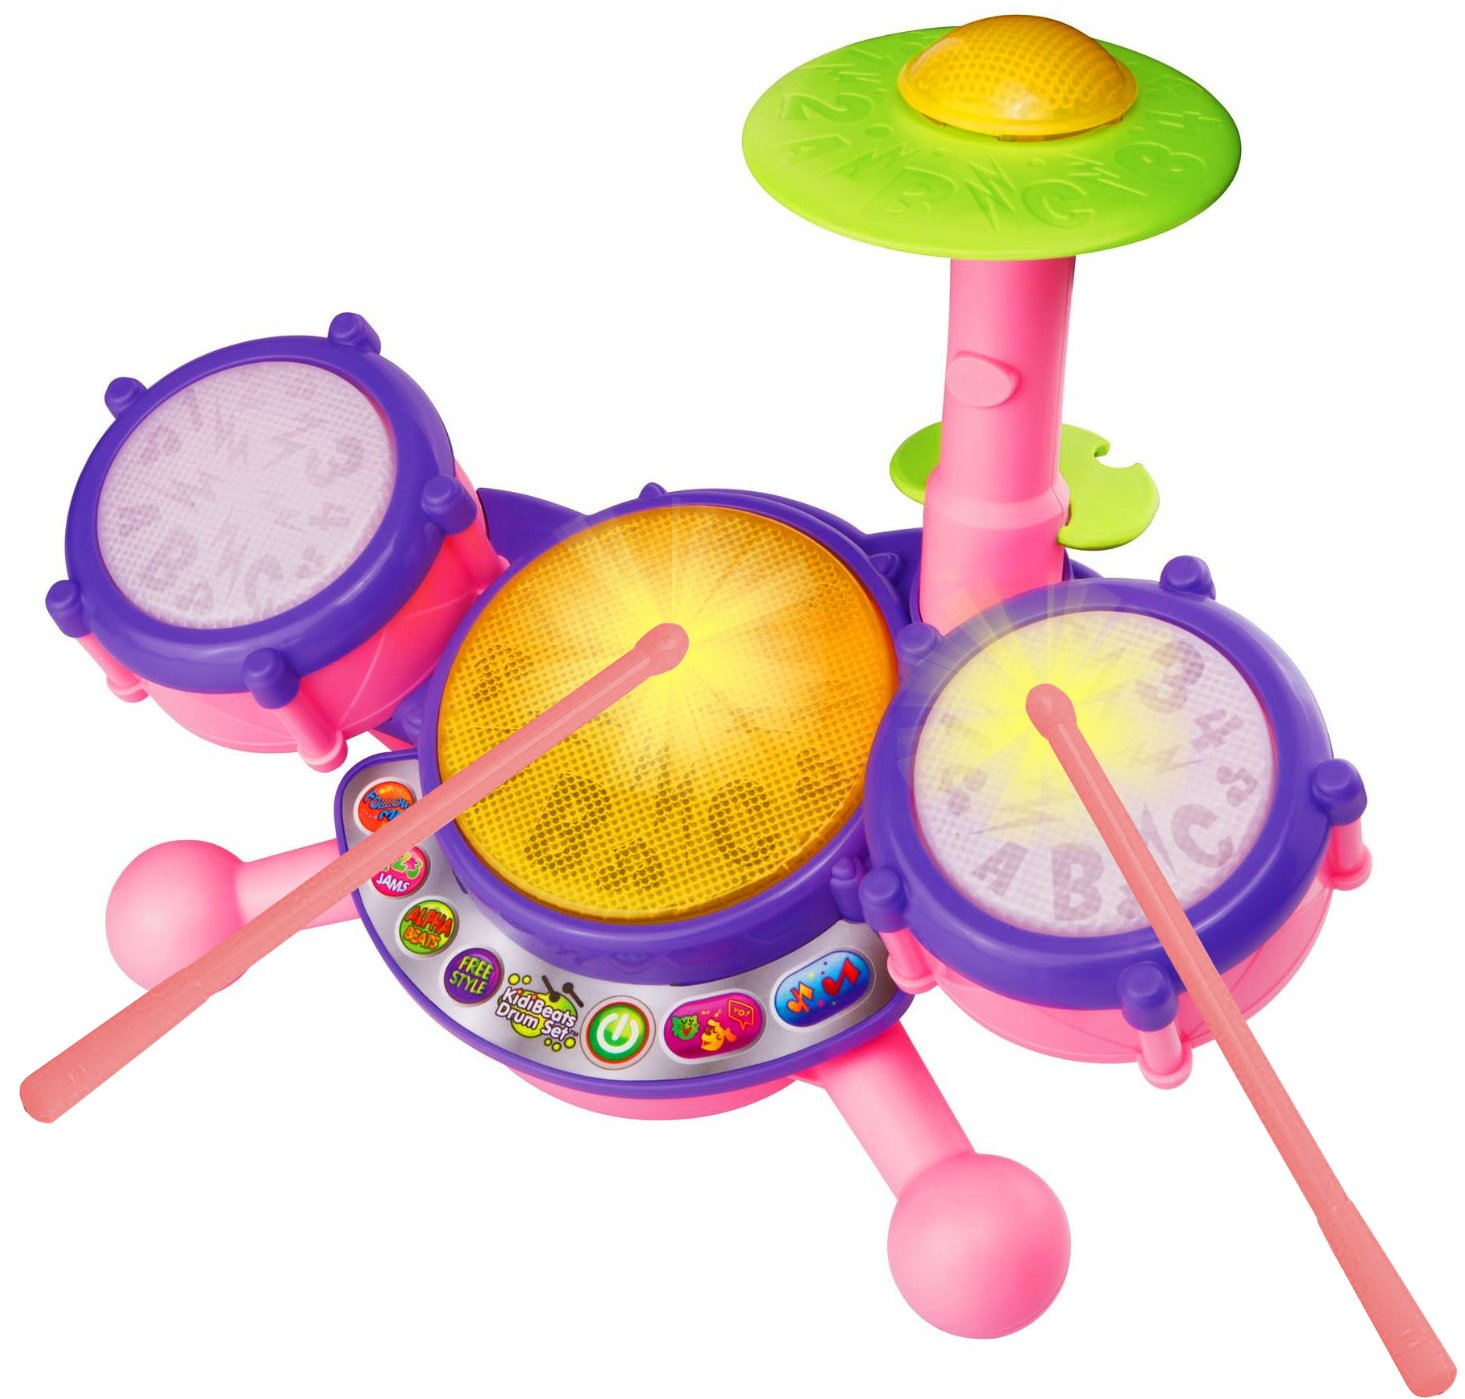 Buy Kidibeats Vtech Drum Set Now!